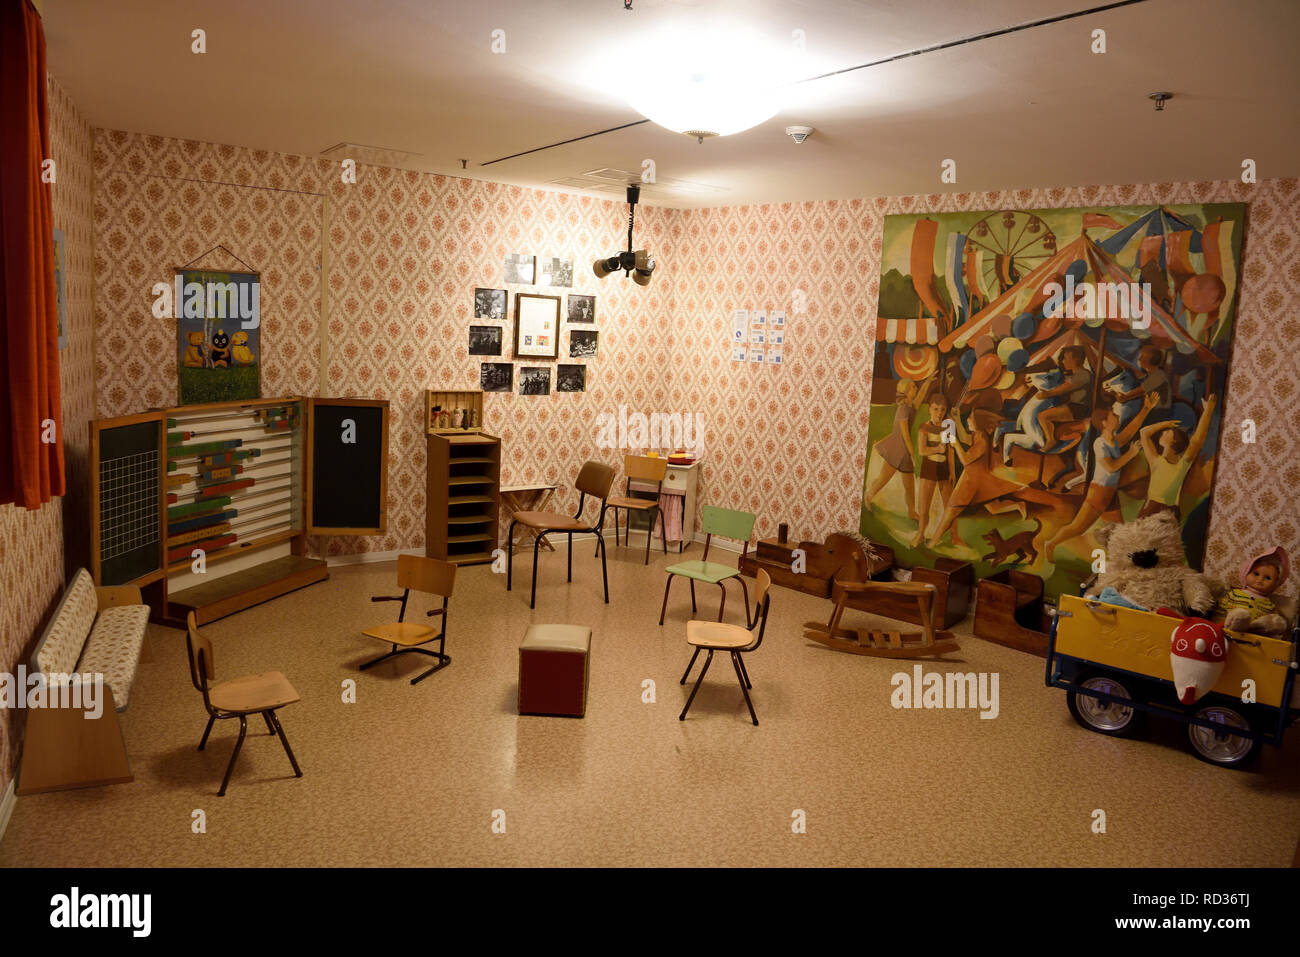 Berlin, Germany - November 10, 2018. Kindergarten room at DDR Museum in Berlin, with furniture and toys. - Stock Image